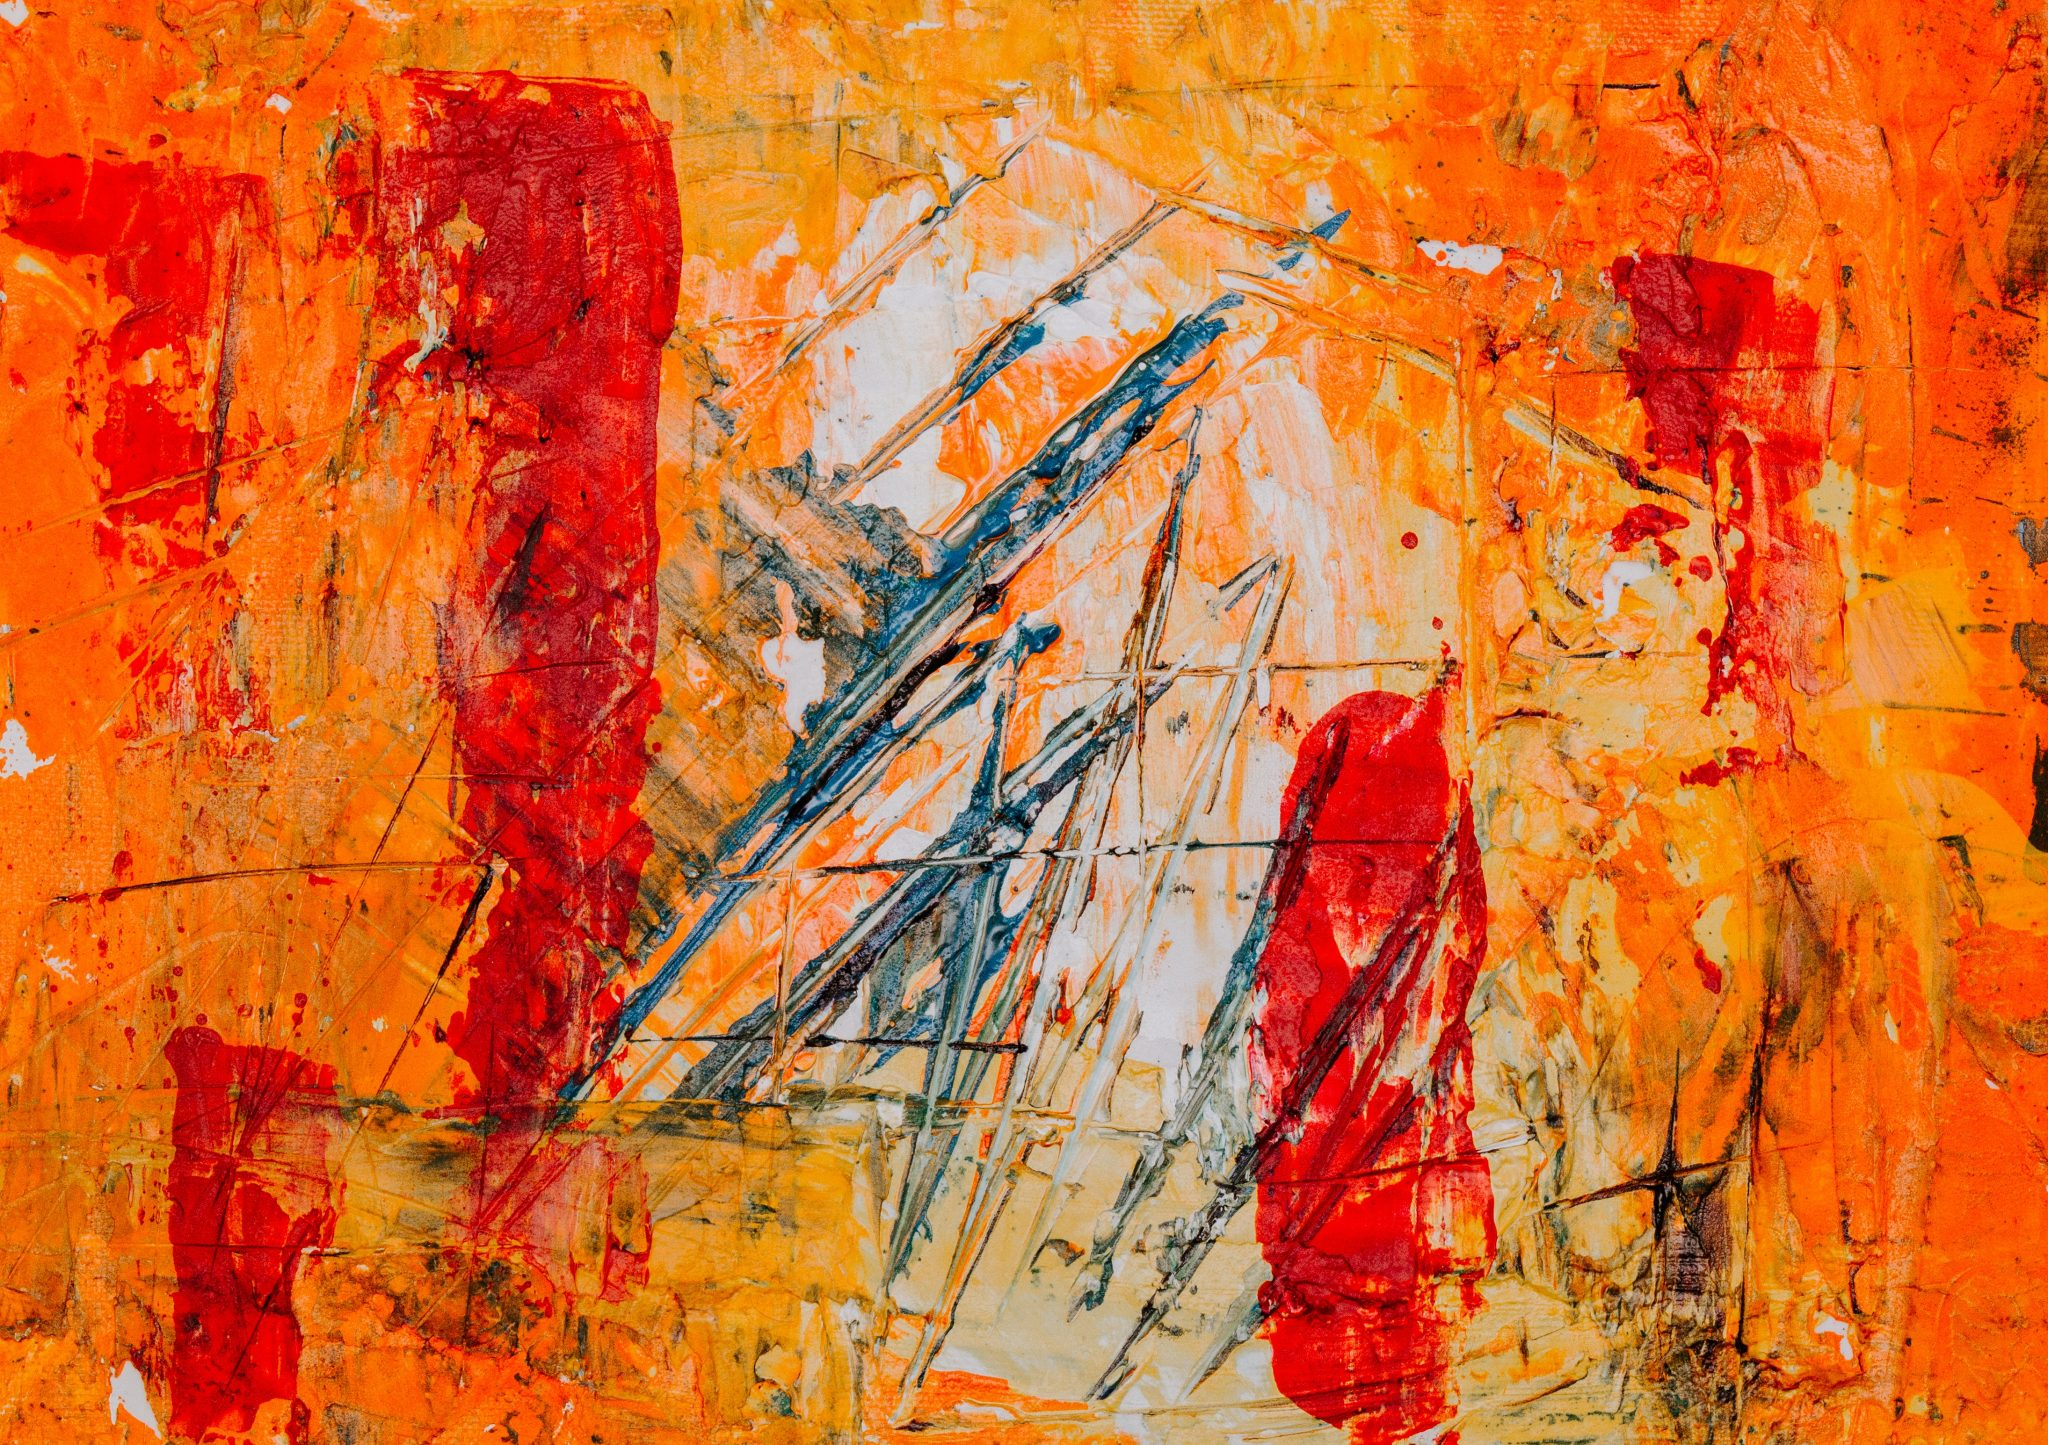 Abstract painting and more at Blue Morning Gallery